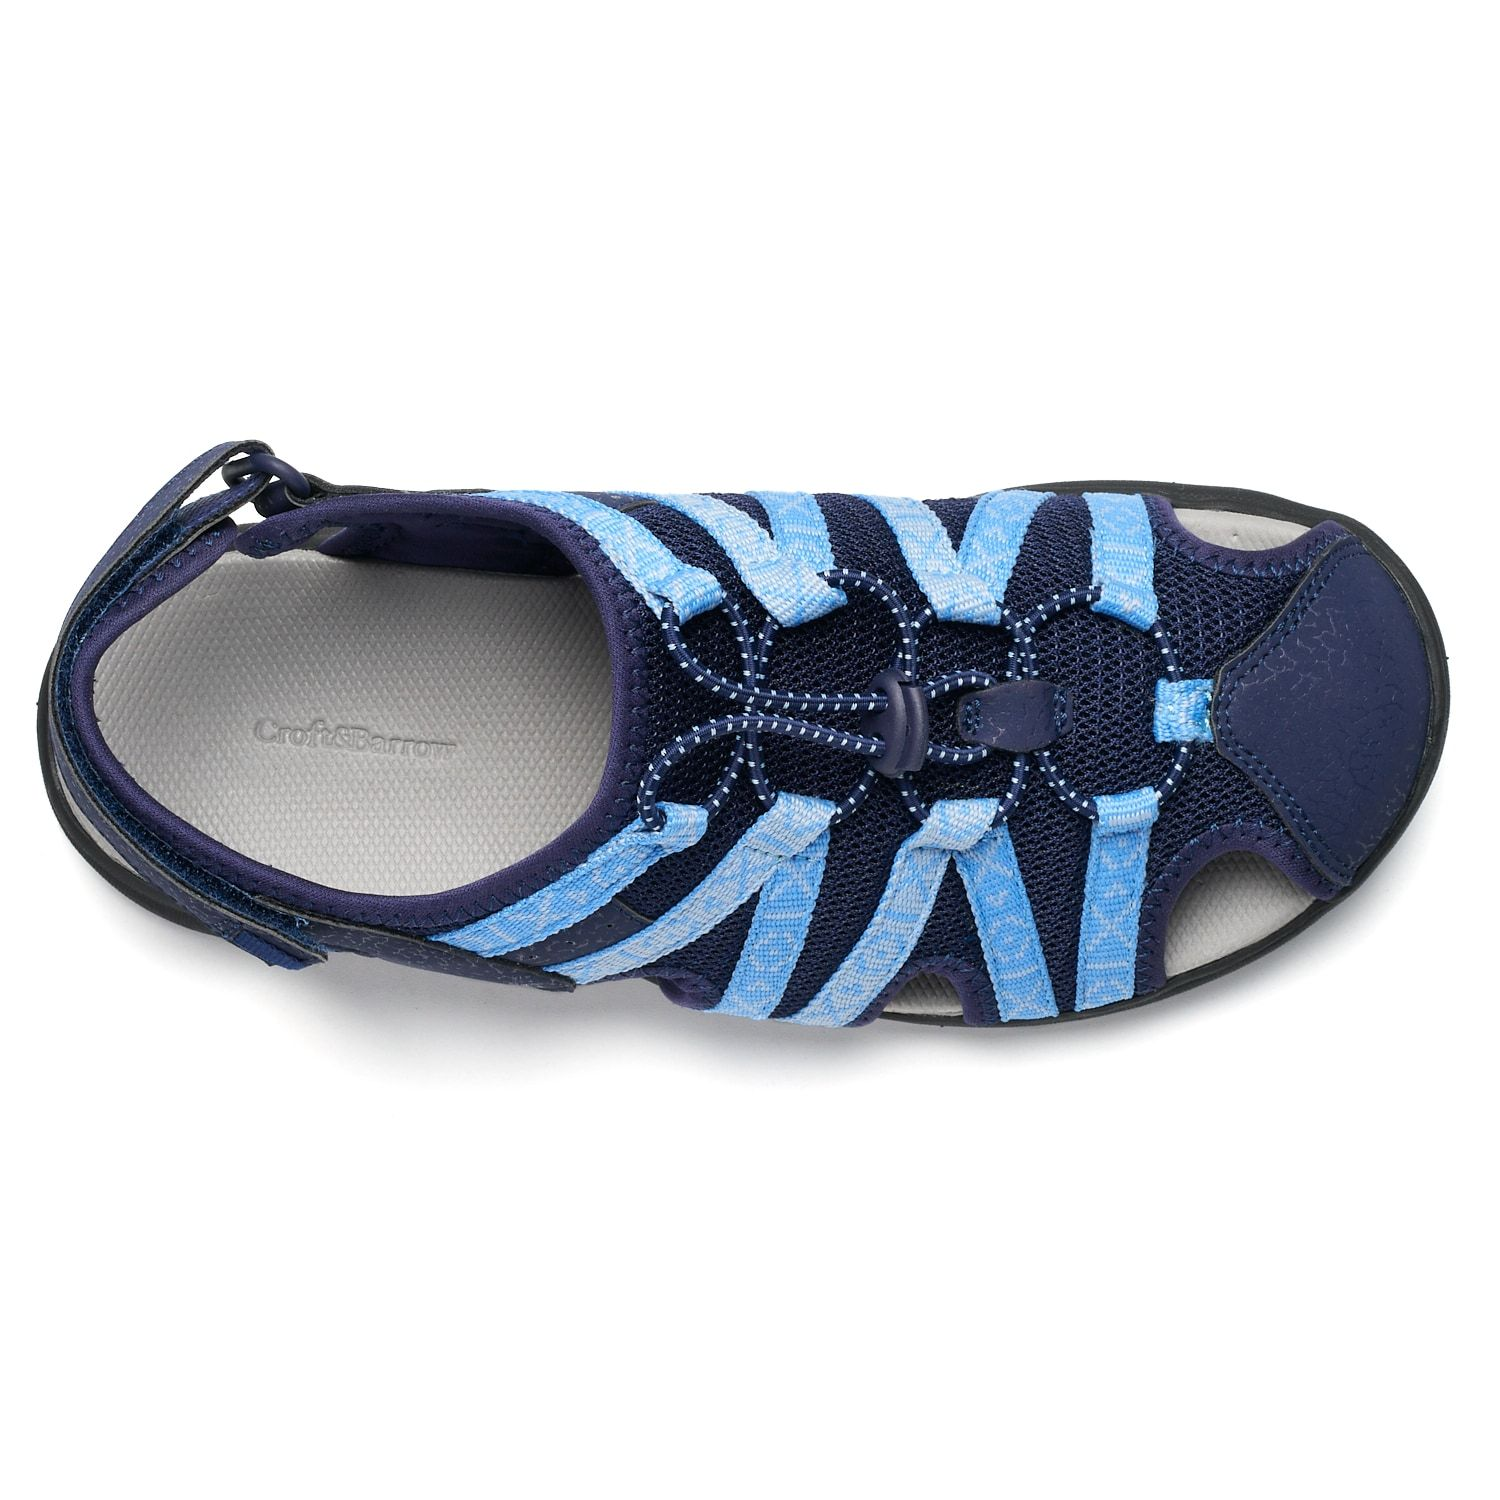 88ffc5f3a96fe2 Croft   Barrow  Kingdom Women s Sandals  Barrow